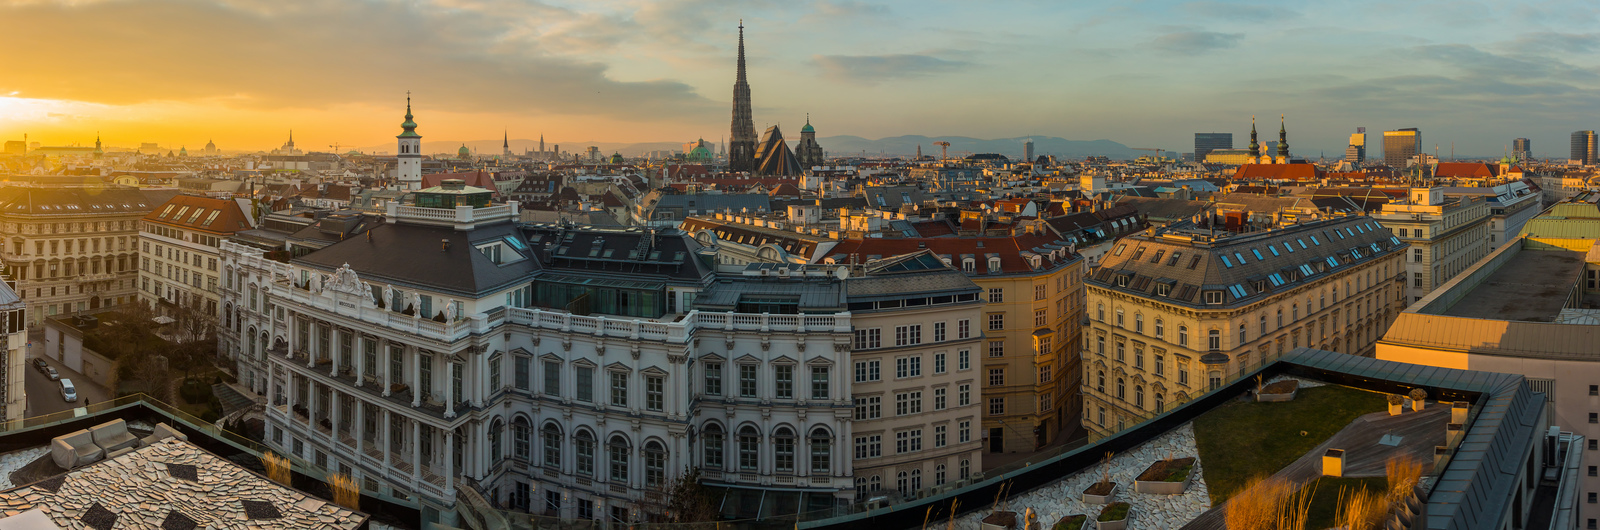 vienna city header